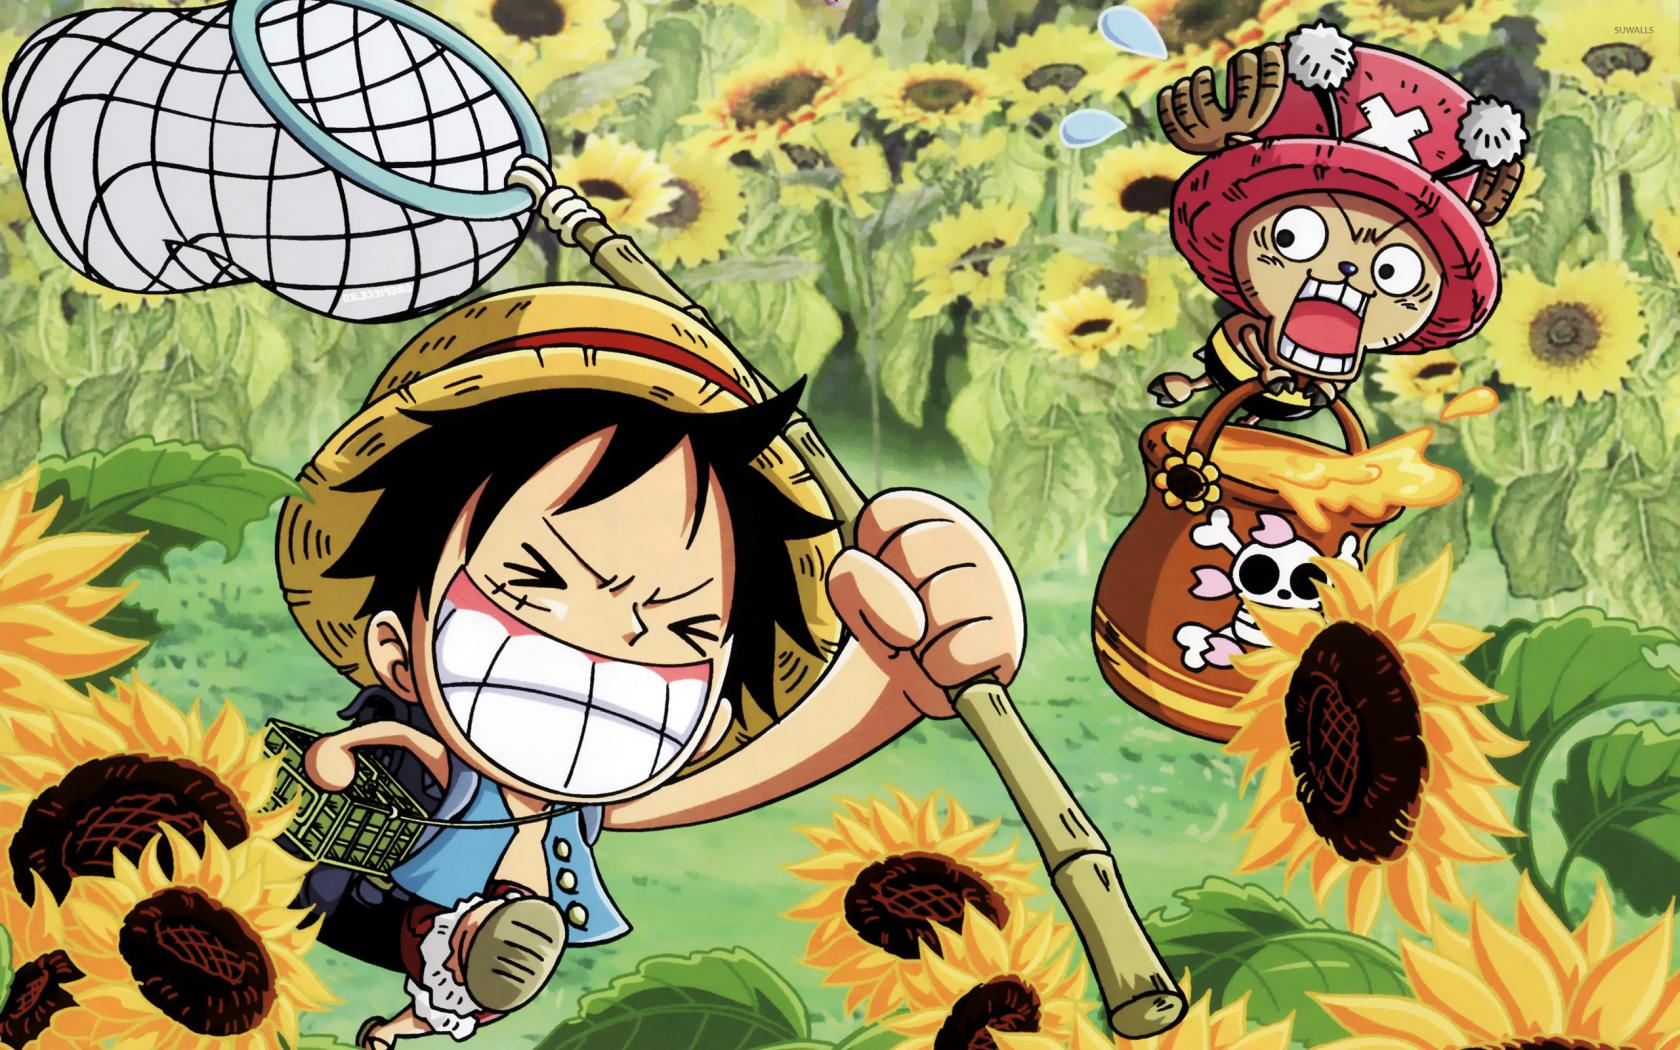 Funny One Piece Wallpaper Luffy And Tony Tony Chopper 47 Pics Hd Wallpapers Wallpapers Download High Resolution Wallpapers